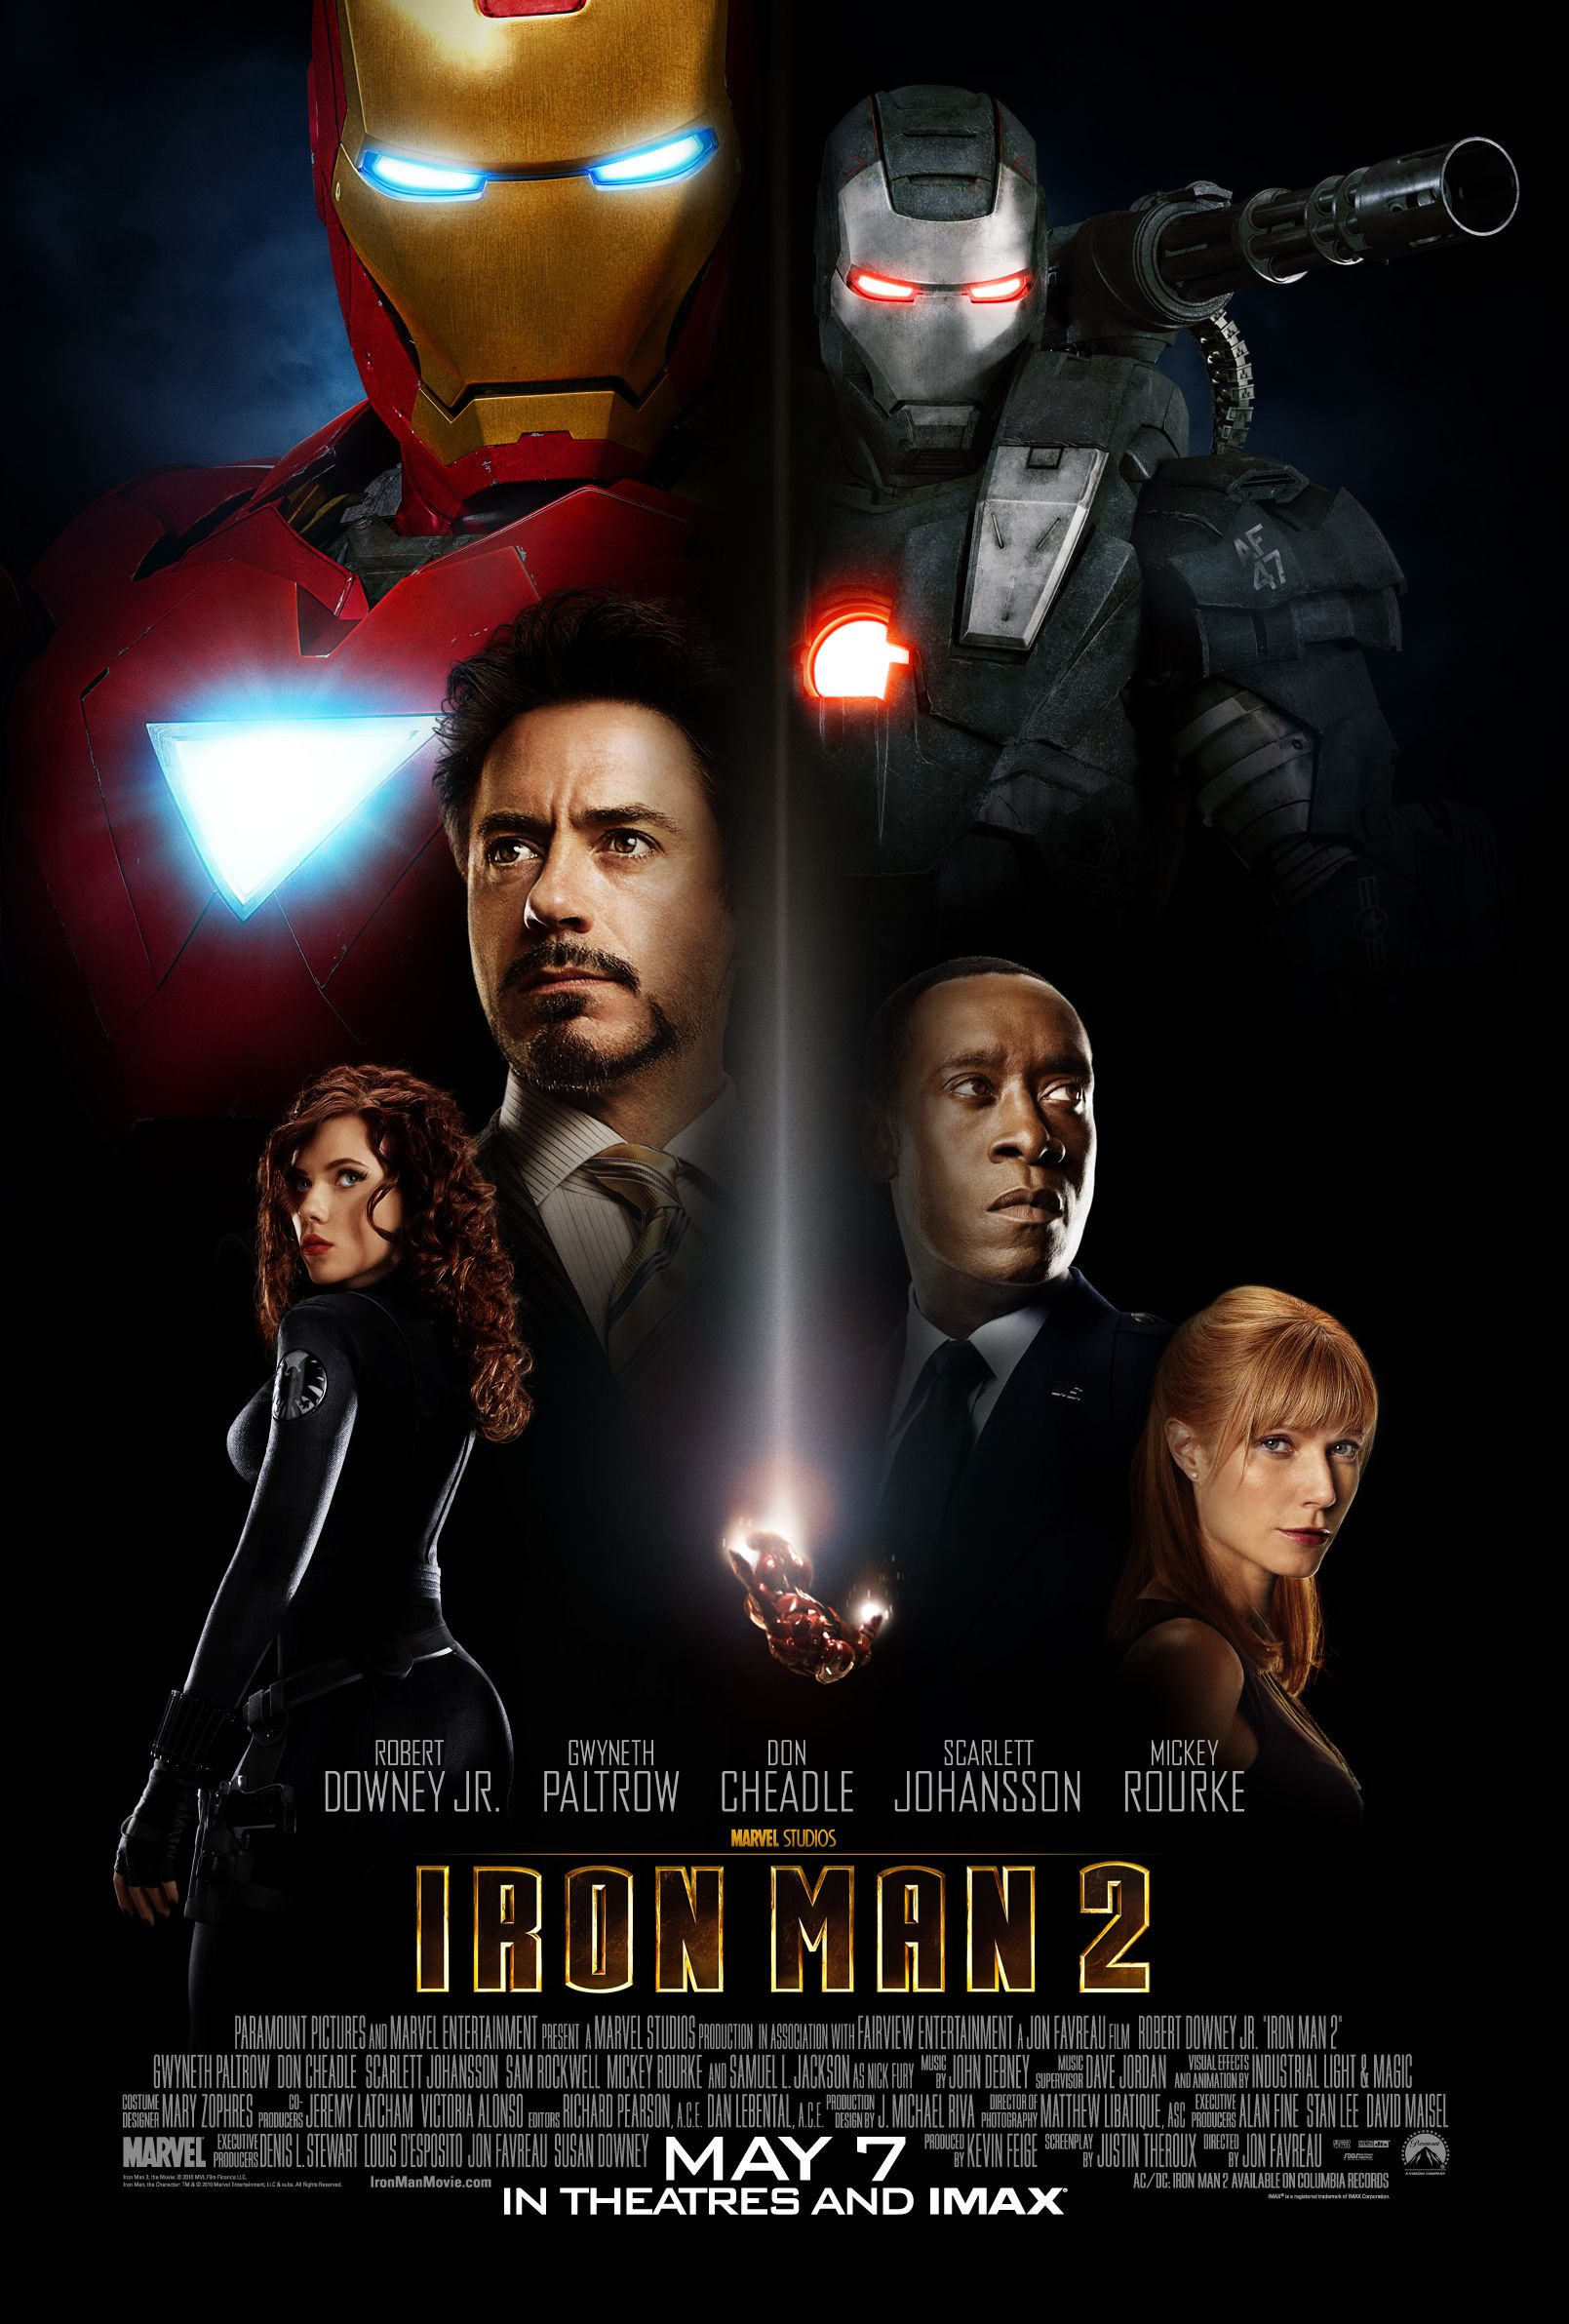 Weekend Box Office IRON MAN 2 Takes Off With 1336 Million 300